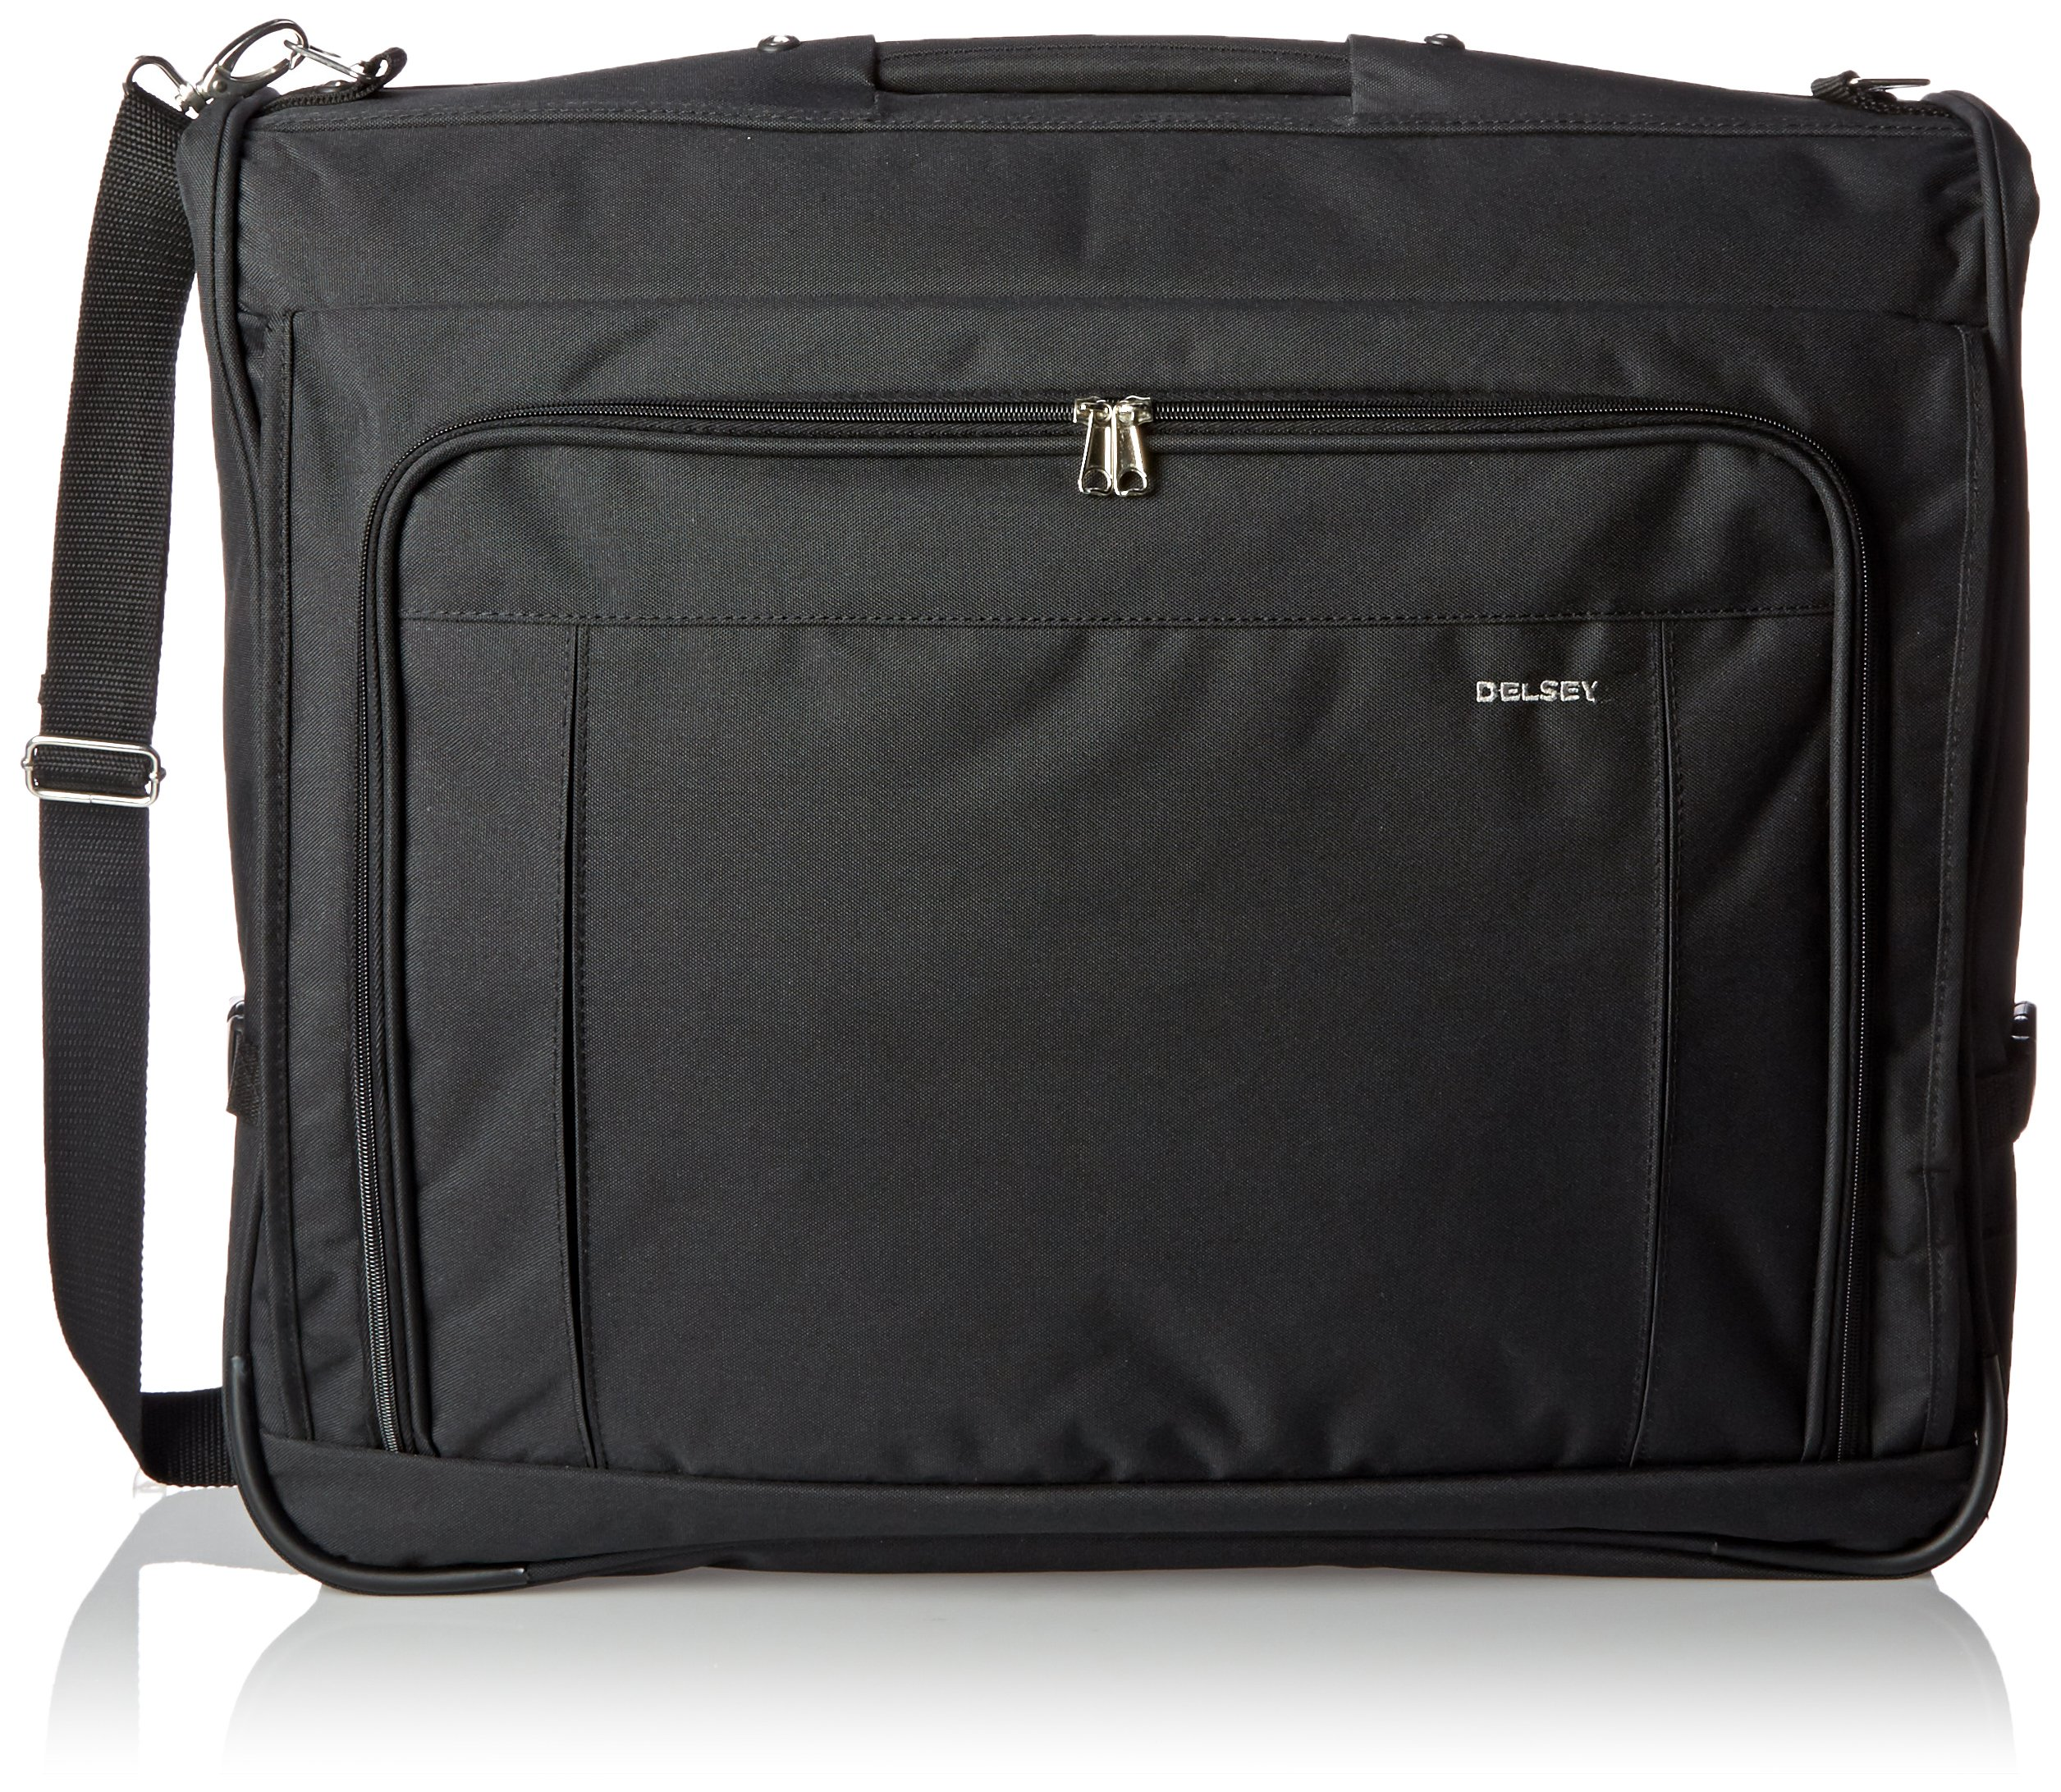 DELSEY Paris Luggage Helium Deluxe Garment Cover, Black